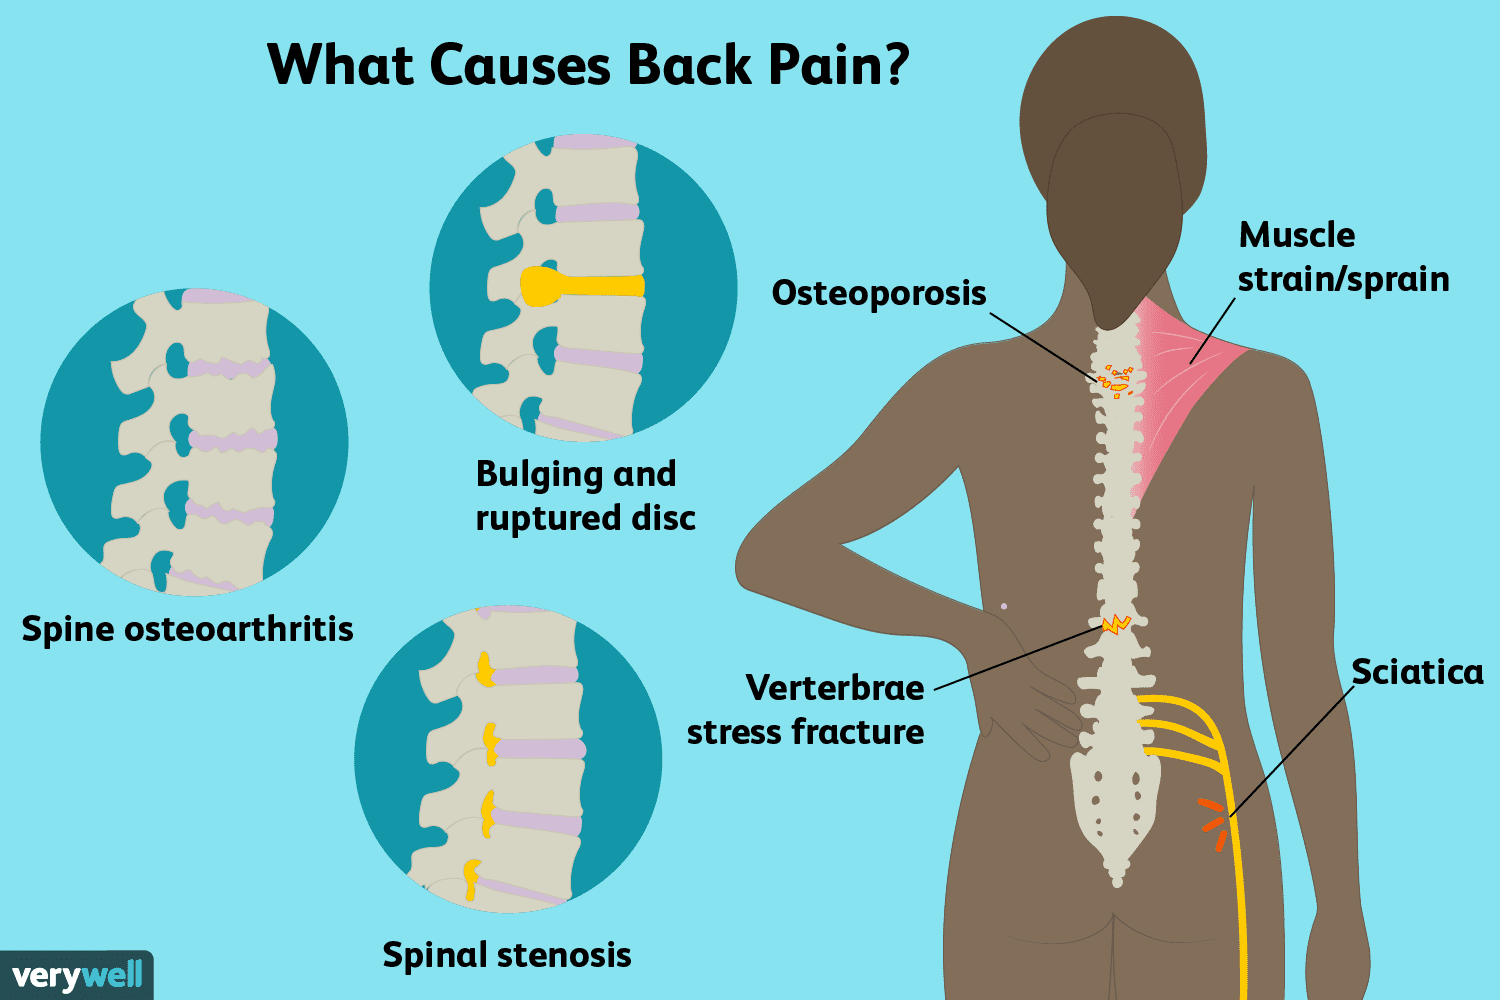 Back Pain: Causes, Treatment, and When to See a Doctor